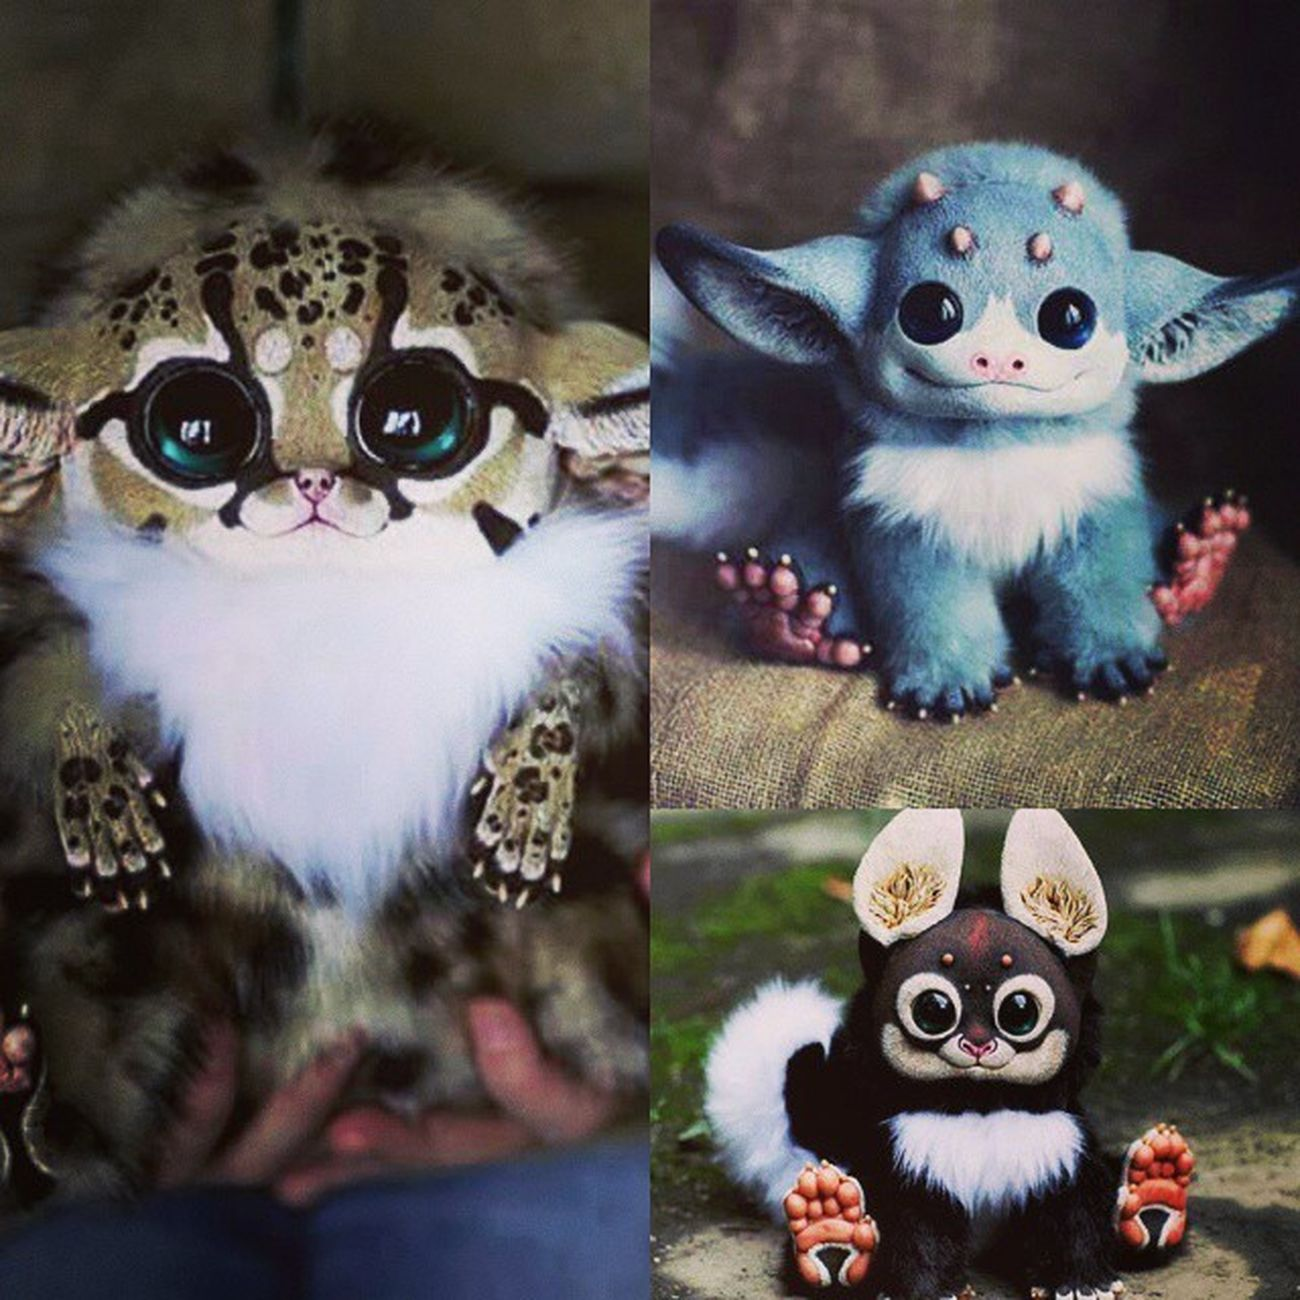 How Cute 😍😍😍😍😍 this Toys seems to be *-* I want them Animaltoys Lovely Littlemonsters Littlemonster ImInLove